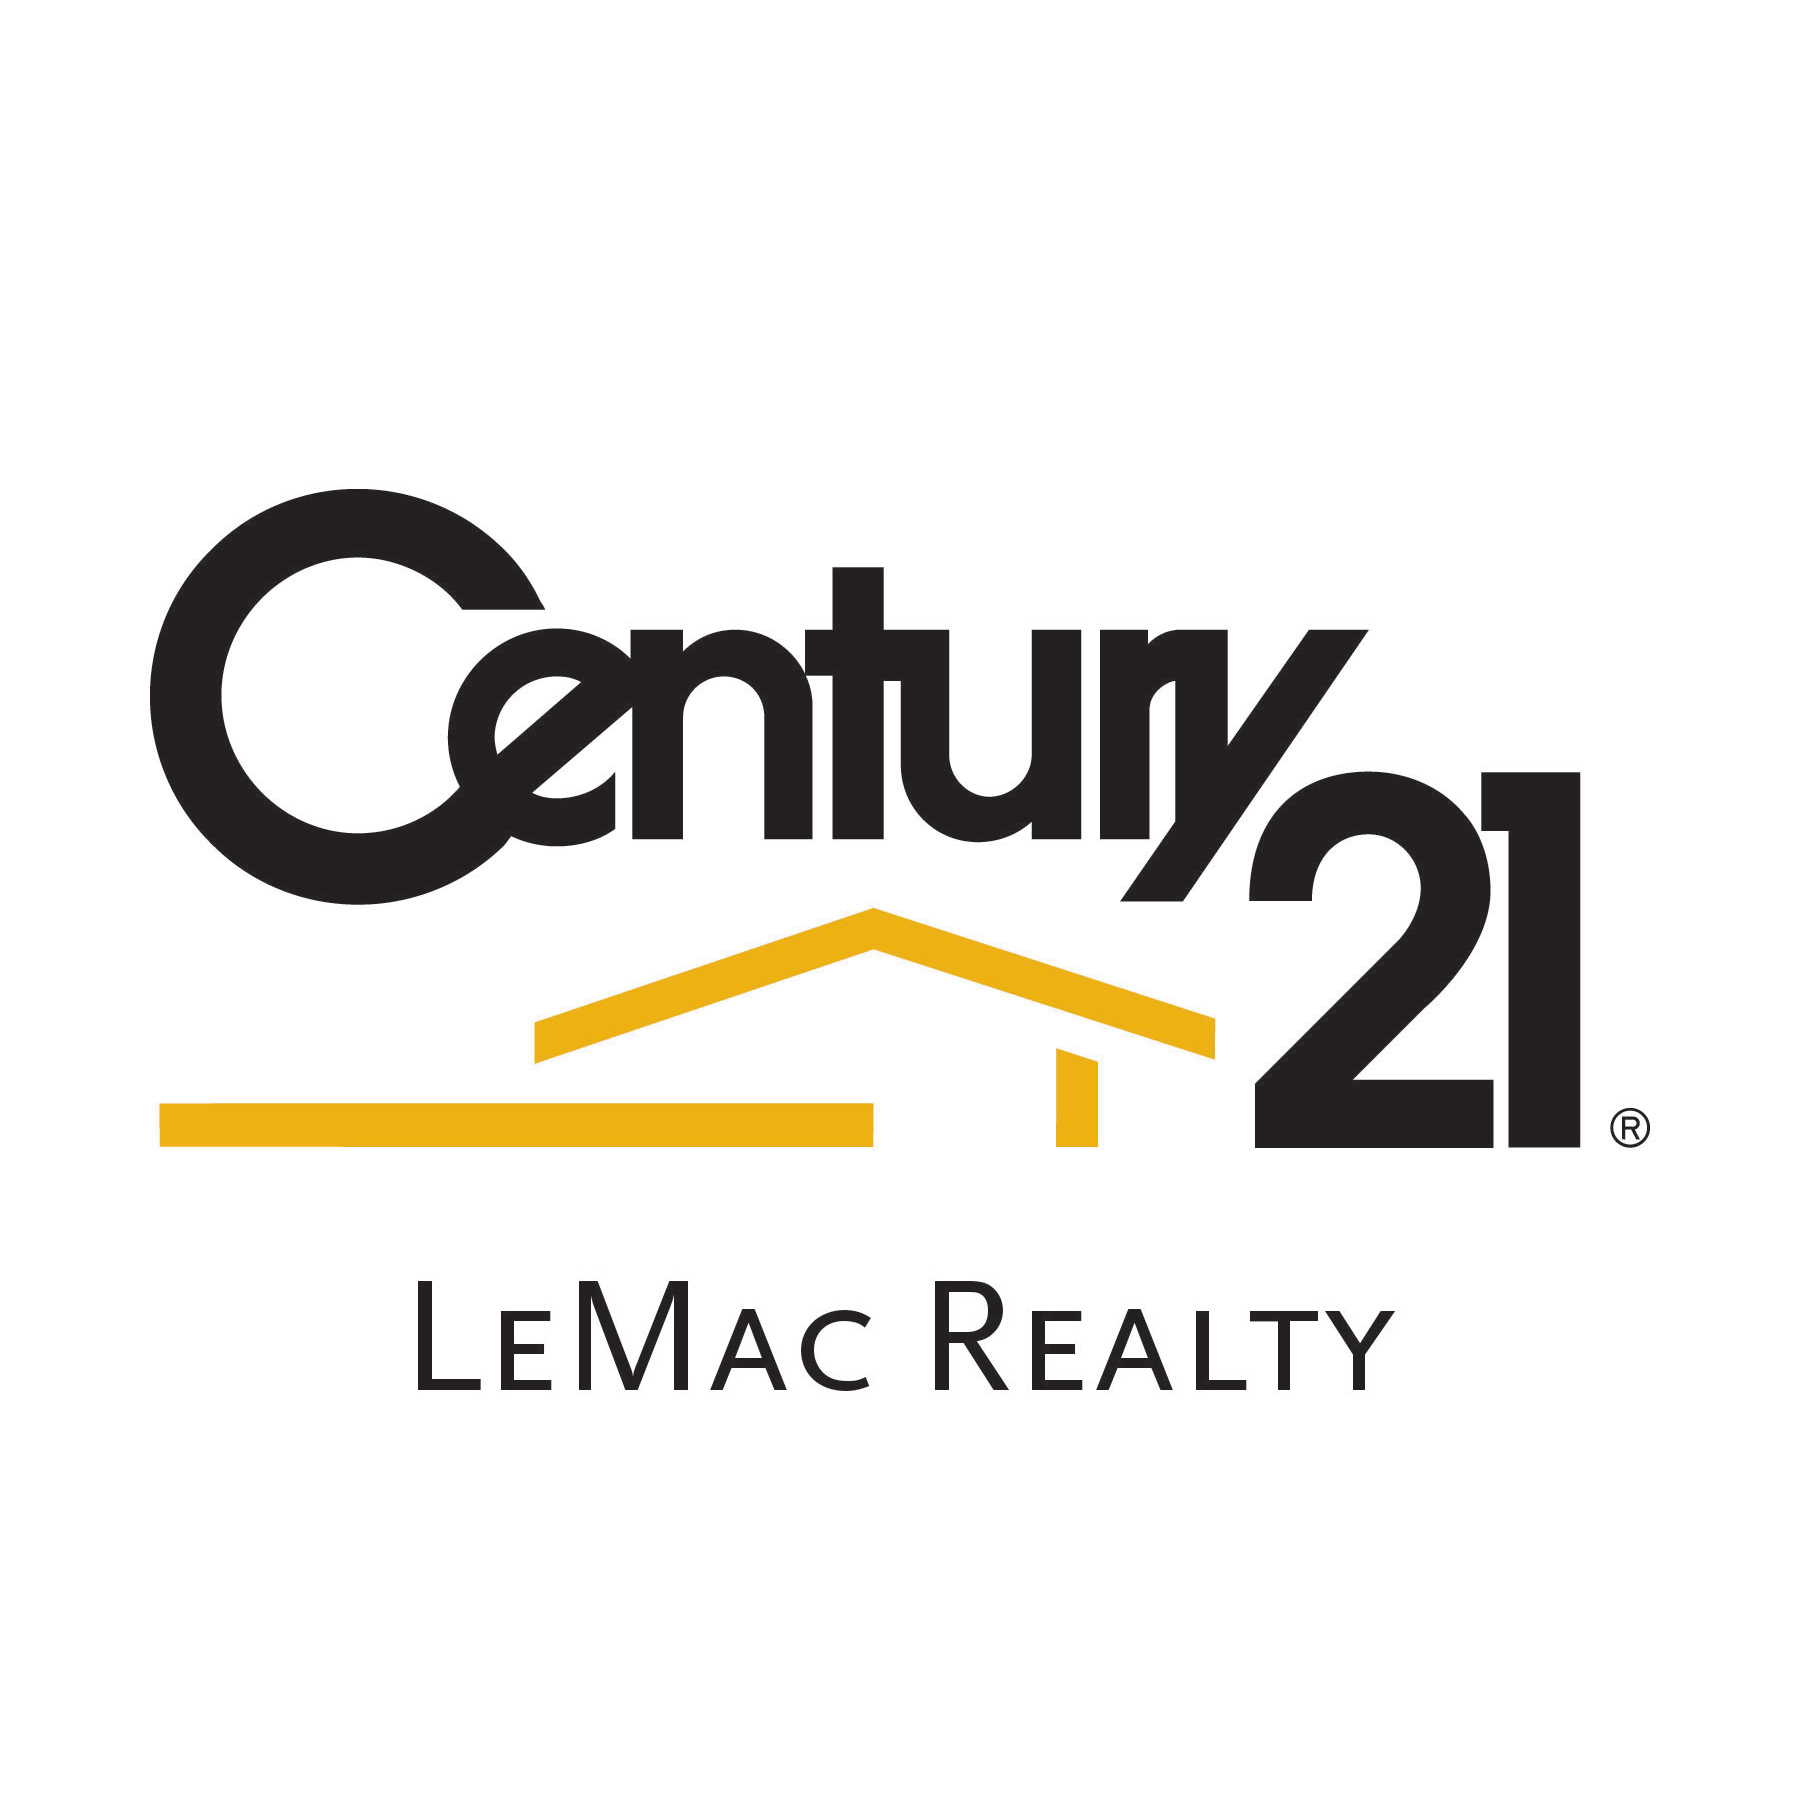 Century 21 LeMac Realty image 5